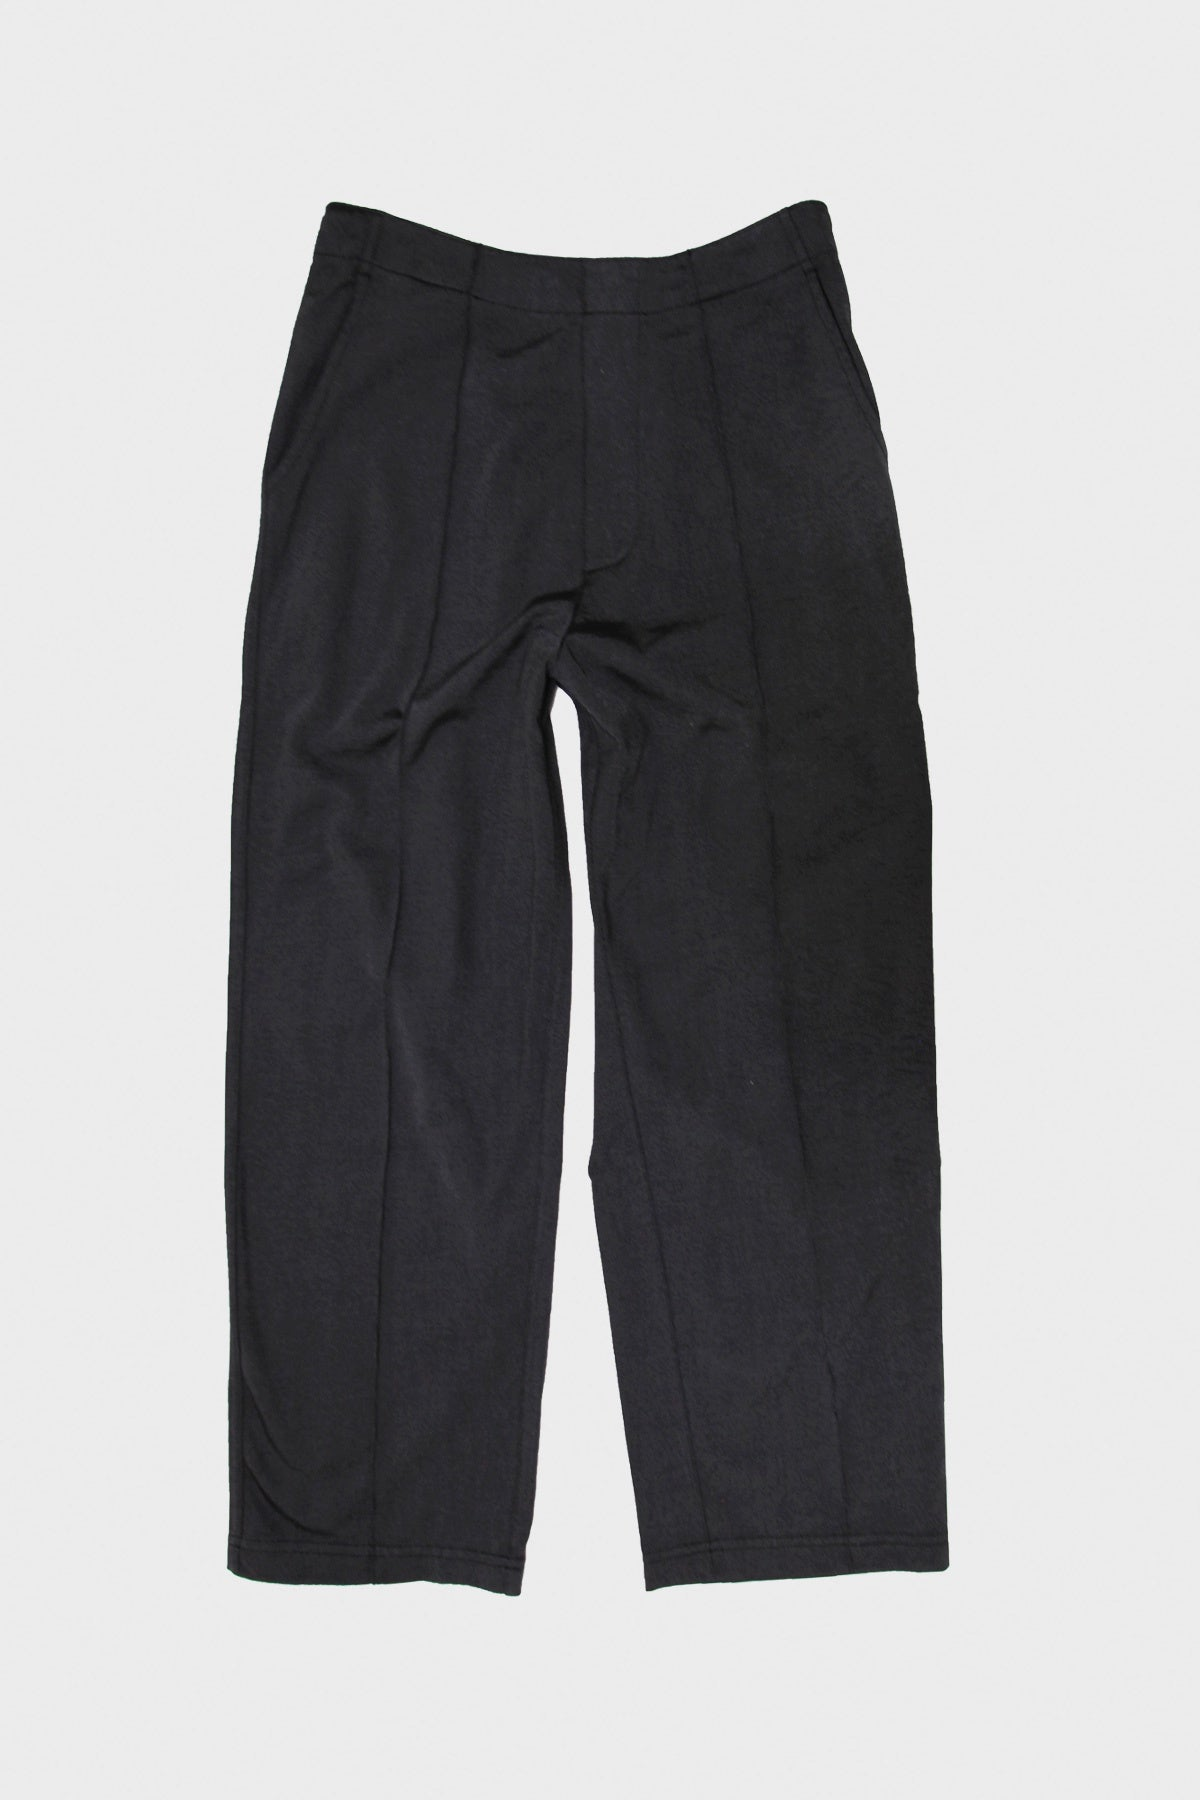 Lady White Co. - Nylon Band Pant - Charcoal - Canoe Club